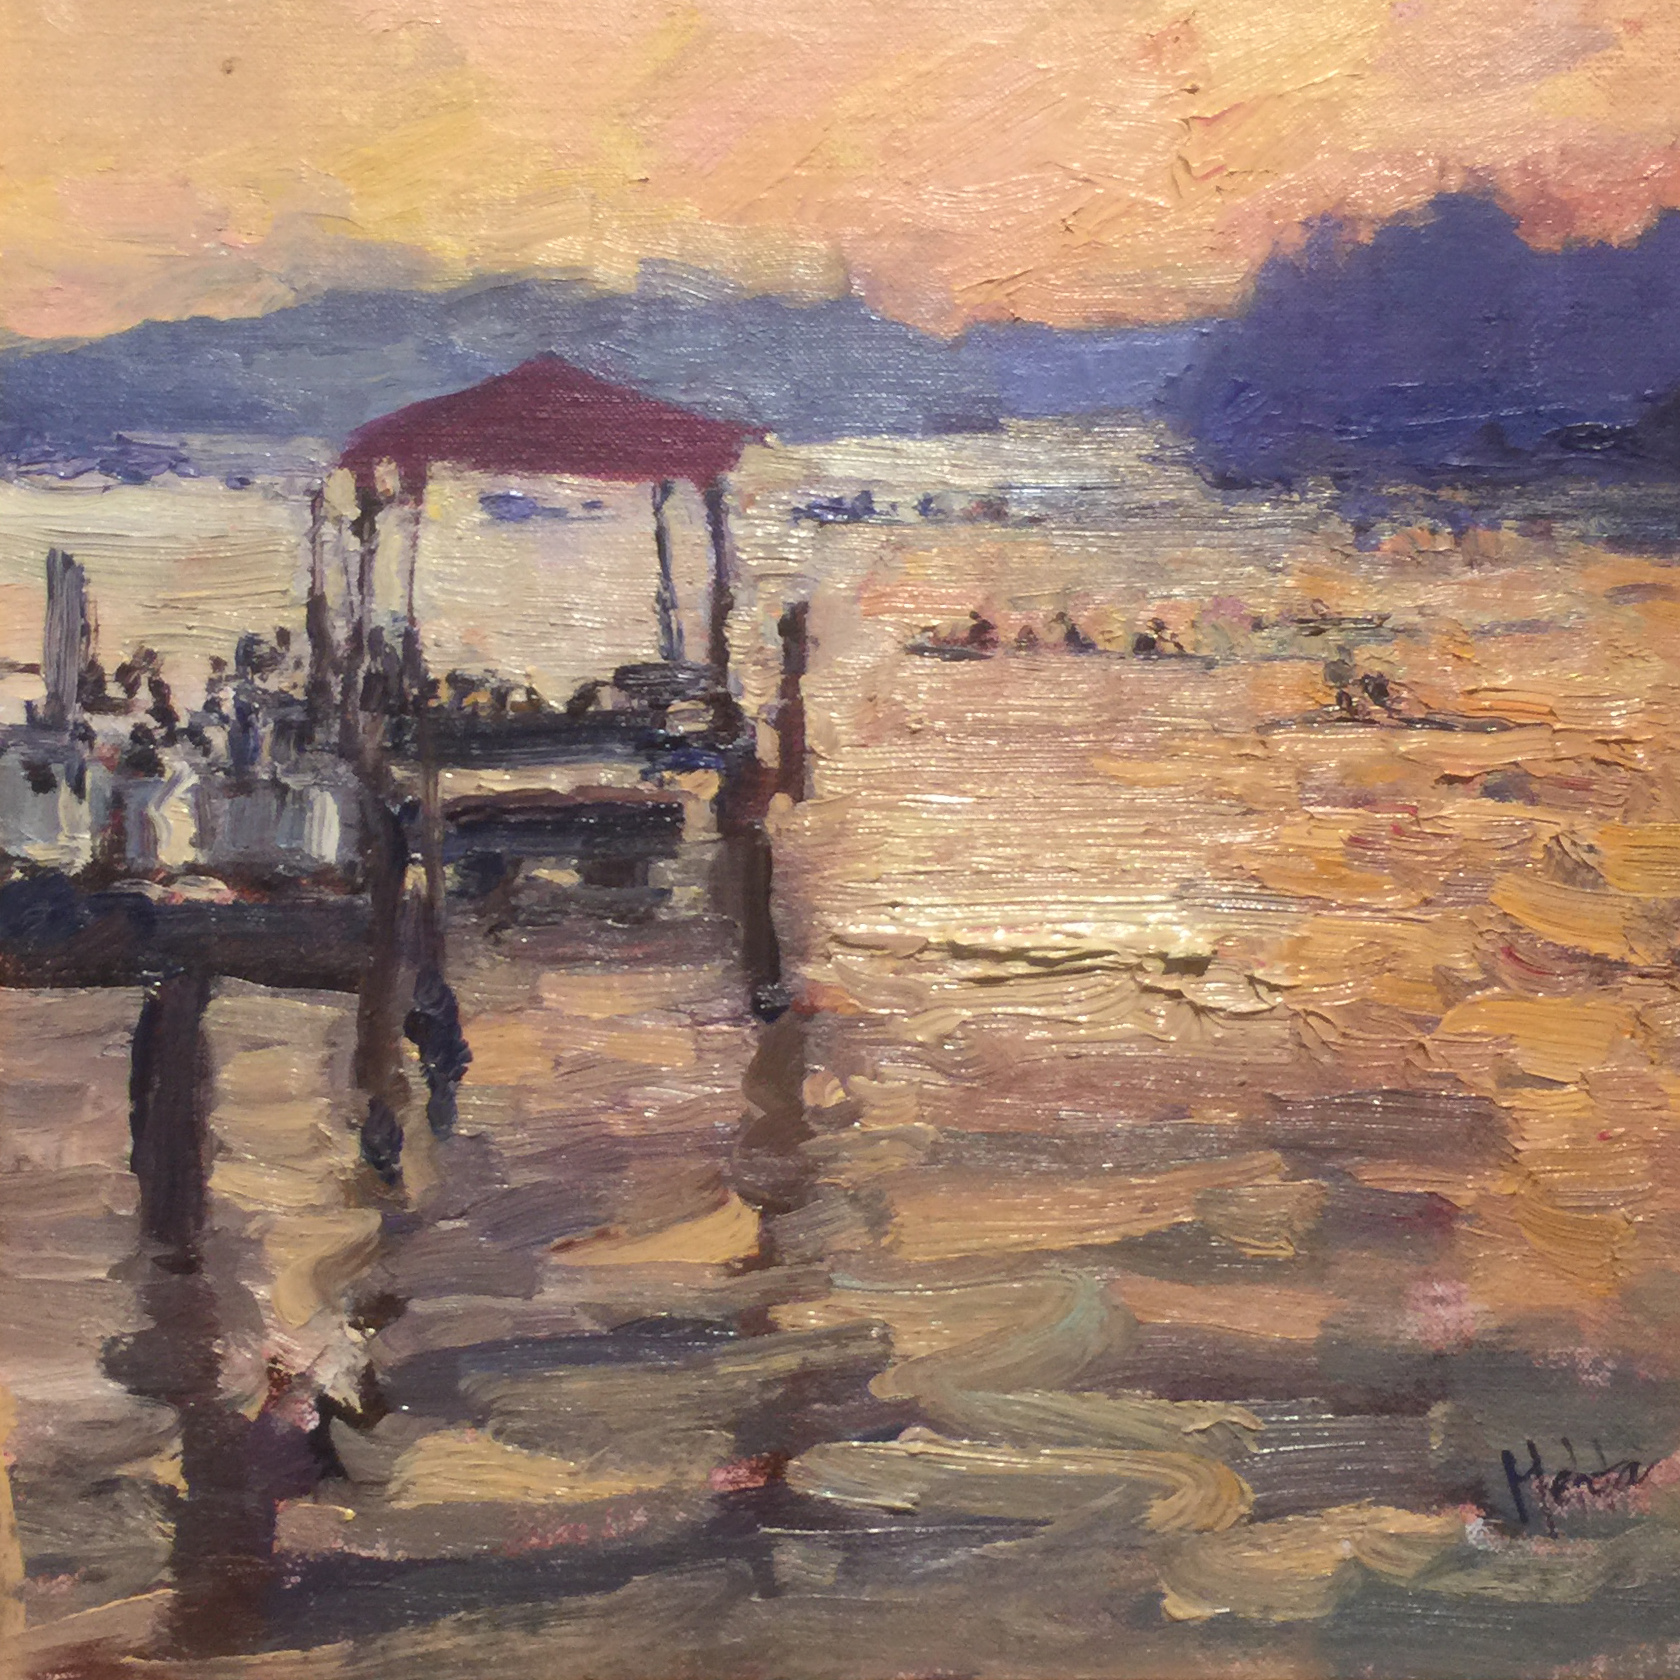 I painted this during Paint Annapolis 2015 and received Best Painting Incorporating Water award.